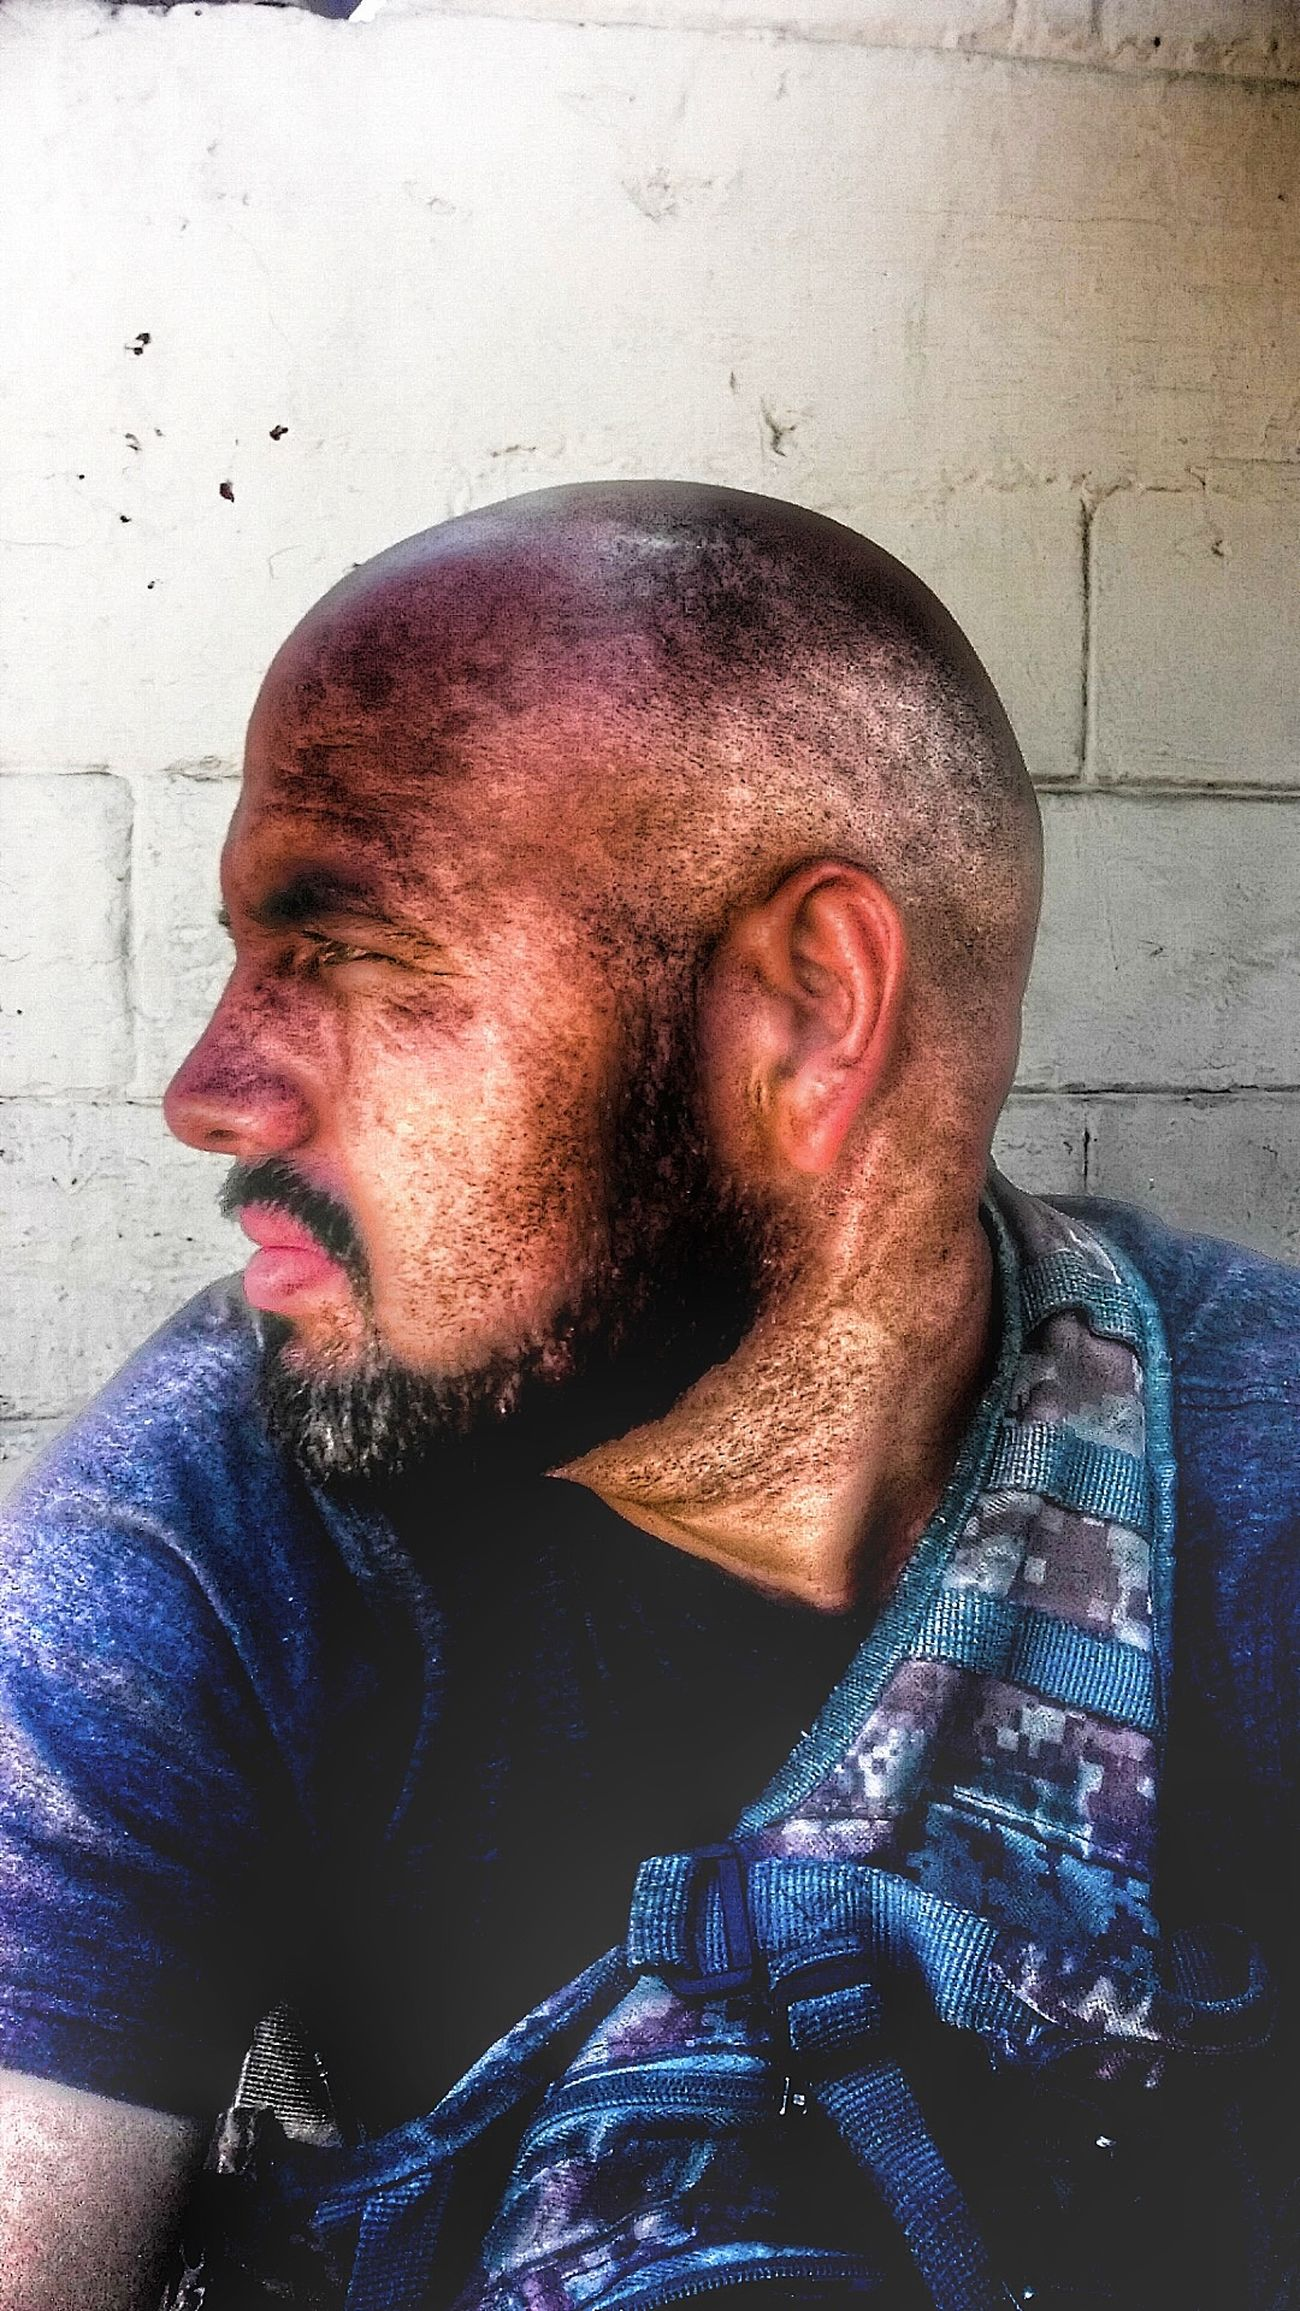 One Person Only Men Mid Adult Shaved Head One Man Only Mid Adult Men Mature Adult Headshot Adults Only One Mature Man Only Mature Men Real People Balding People Beard Casual Clothing Adult Mustache Portrait Human Face EyeEmNewHere